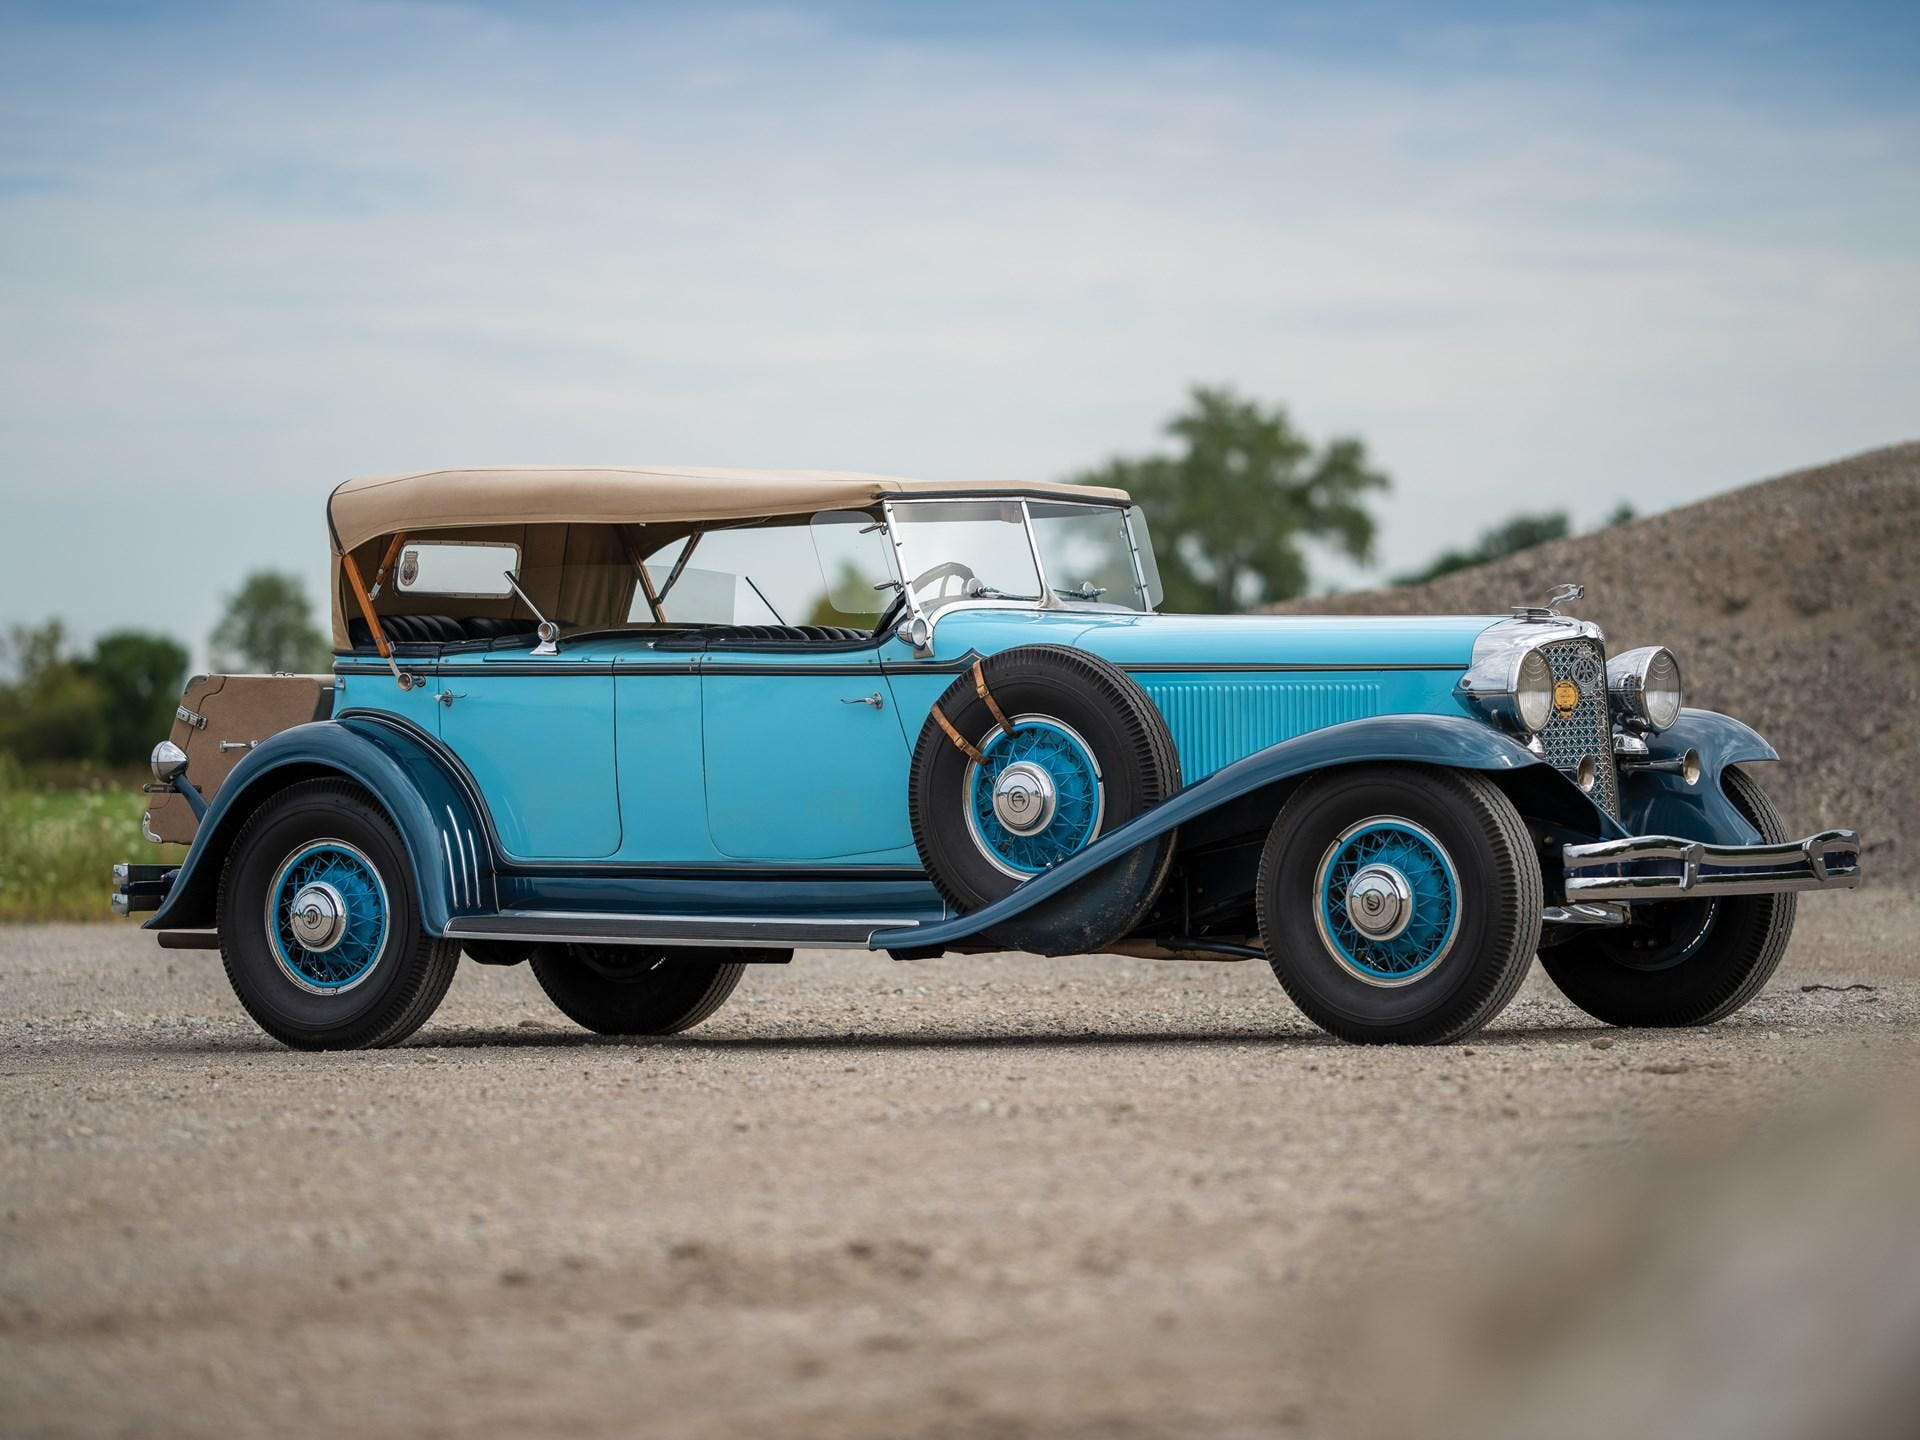 1931 Chrysler Cg Imperial Dual-Cowl Phaeton in the Style of LeBaron